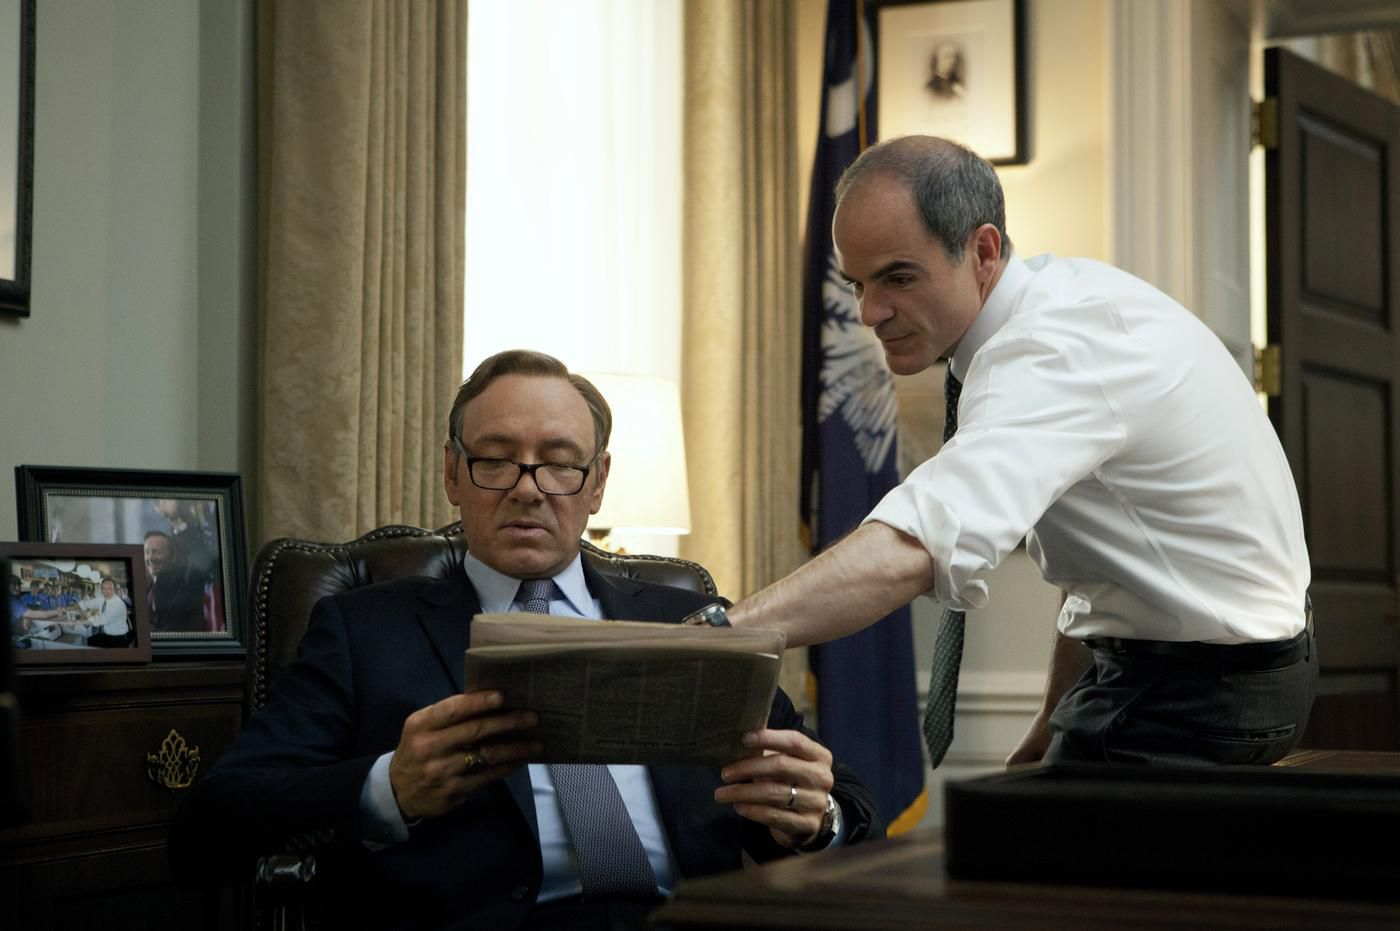 Why House of Cards season 3 was a disappointment